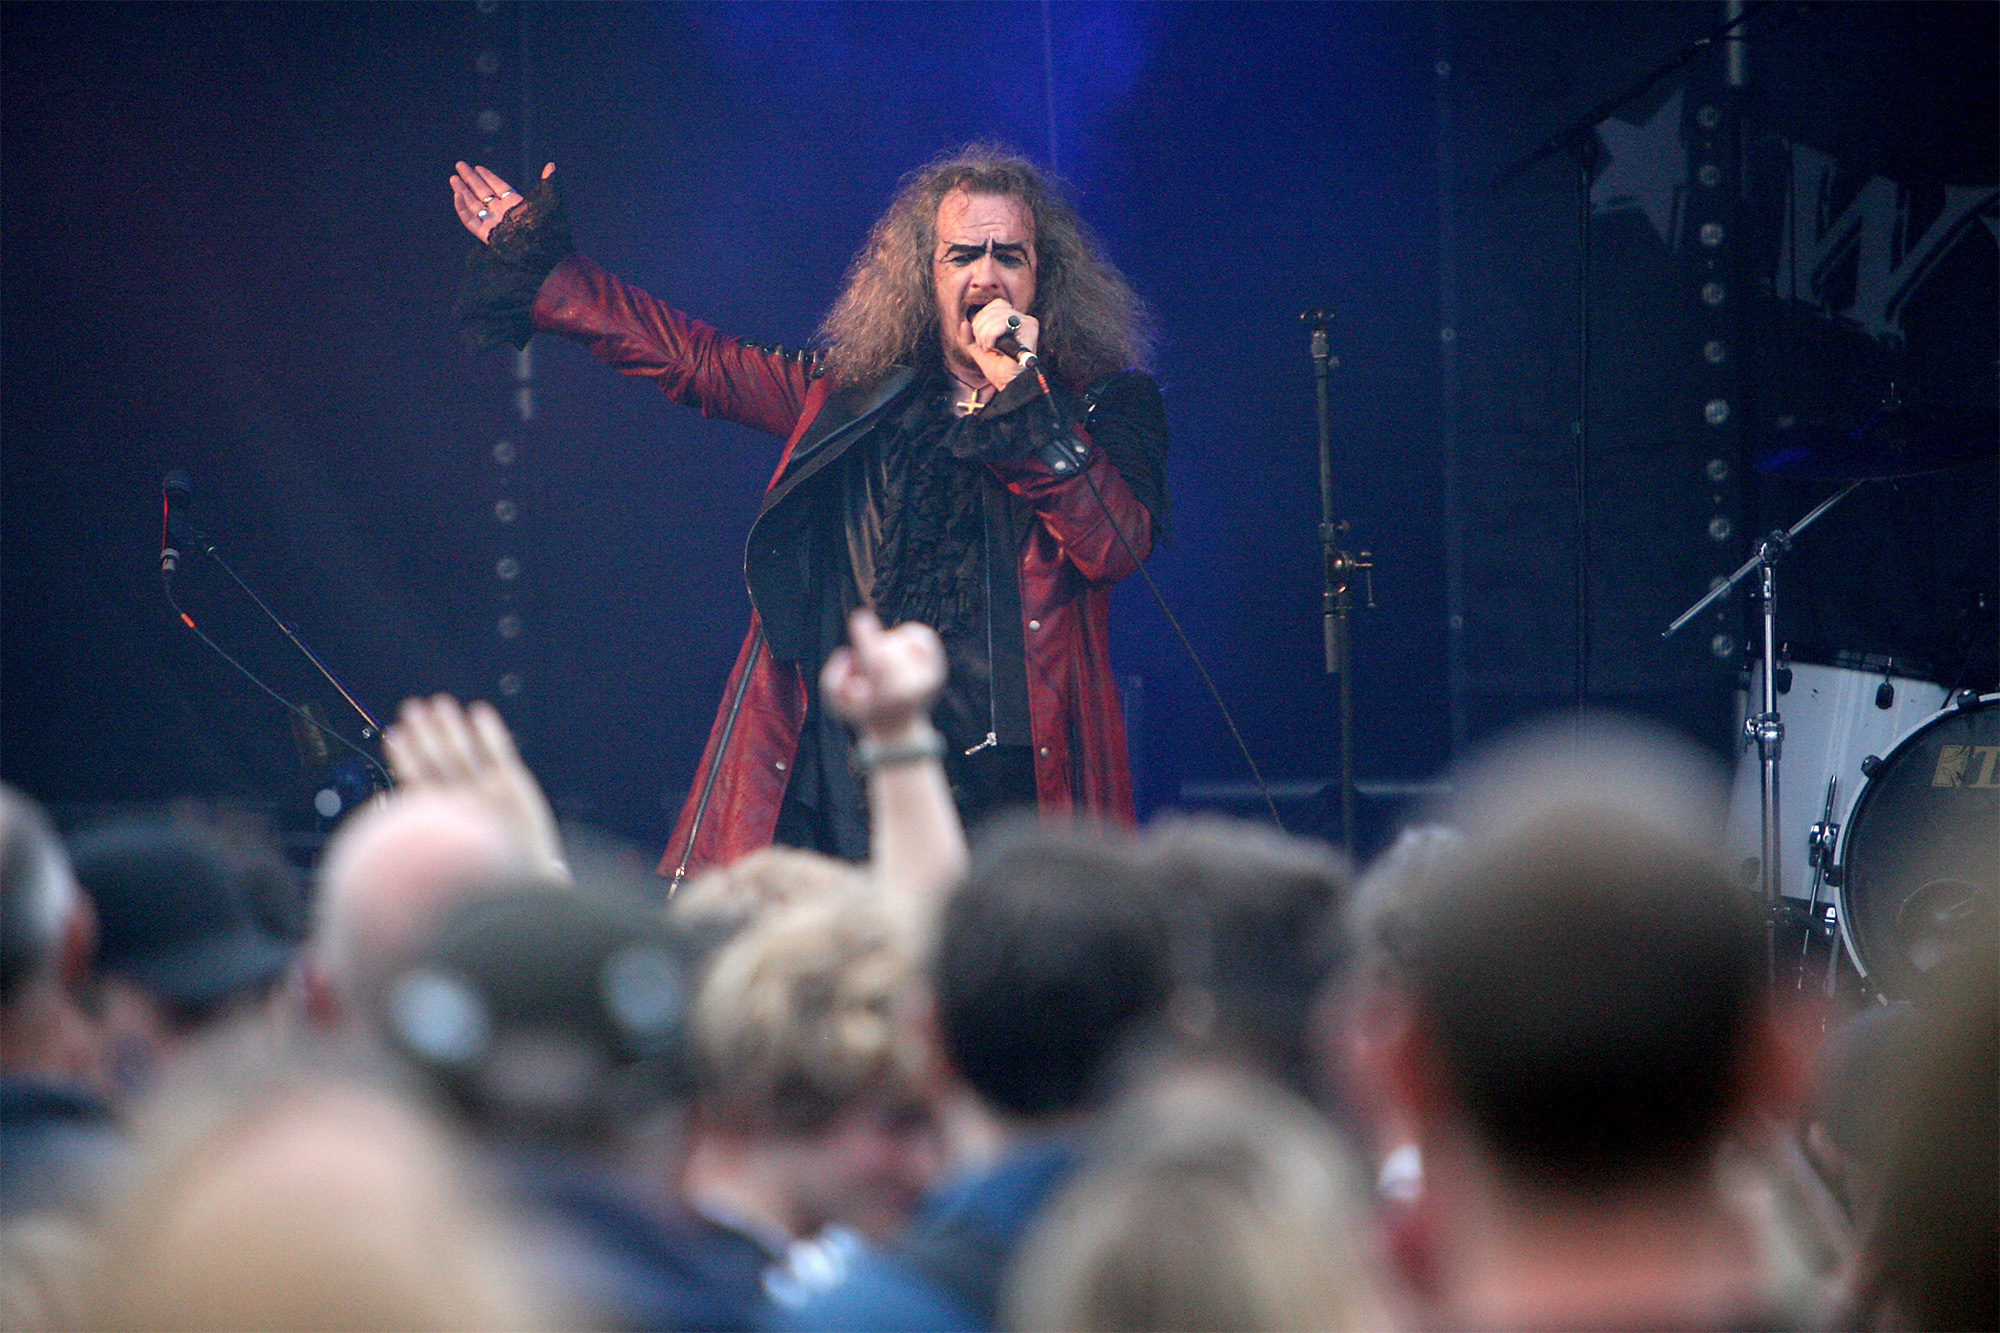 Doctor and the Medics singer Clive Jackson onstage at Witney Music Festival .10/6/17.Picture: Ric Mellis.